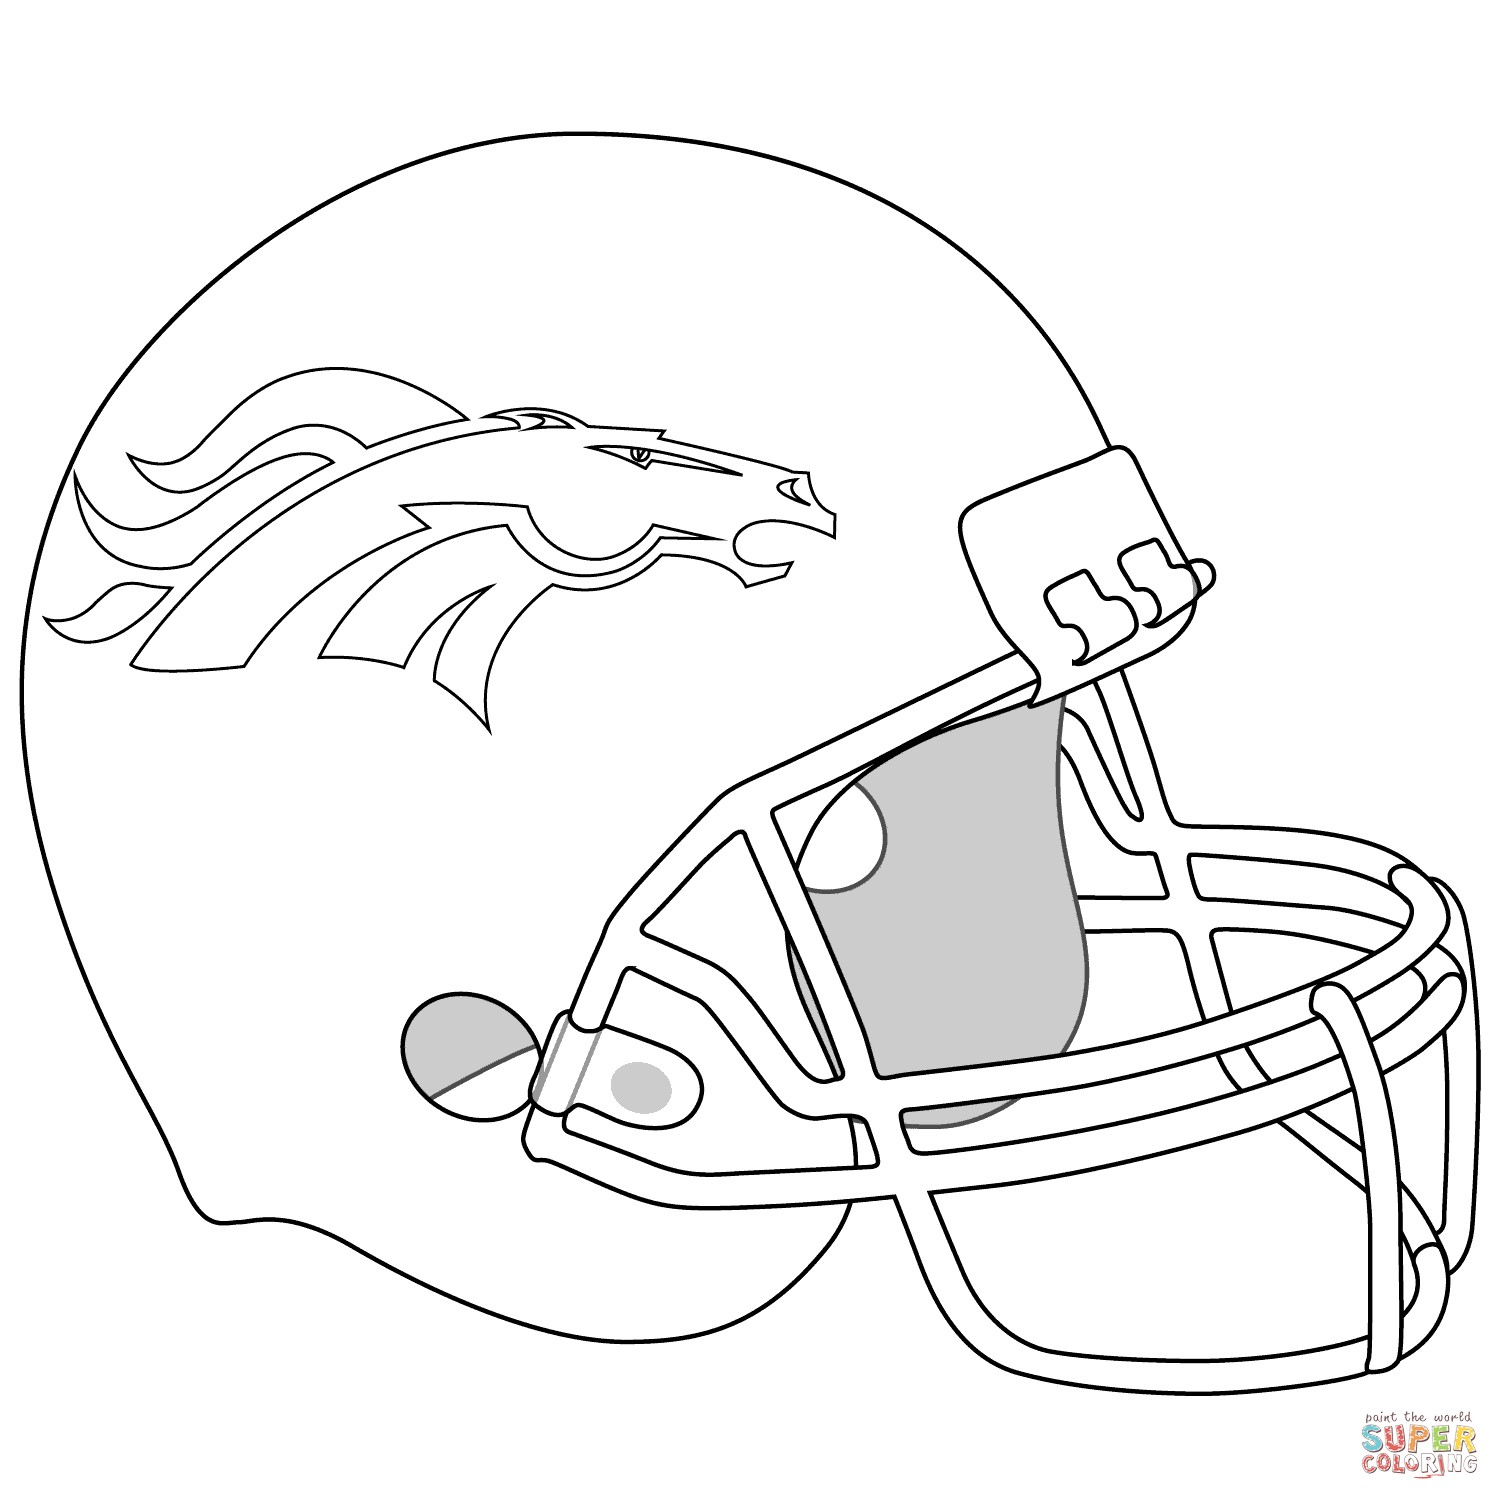 1500x1500 Cool Super Bowl Coloring Pages Colorings Me